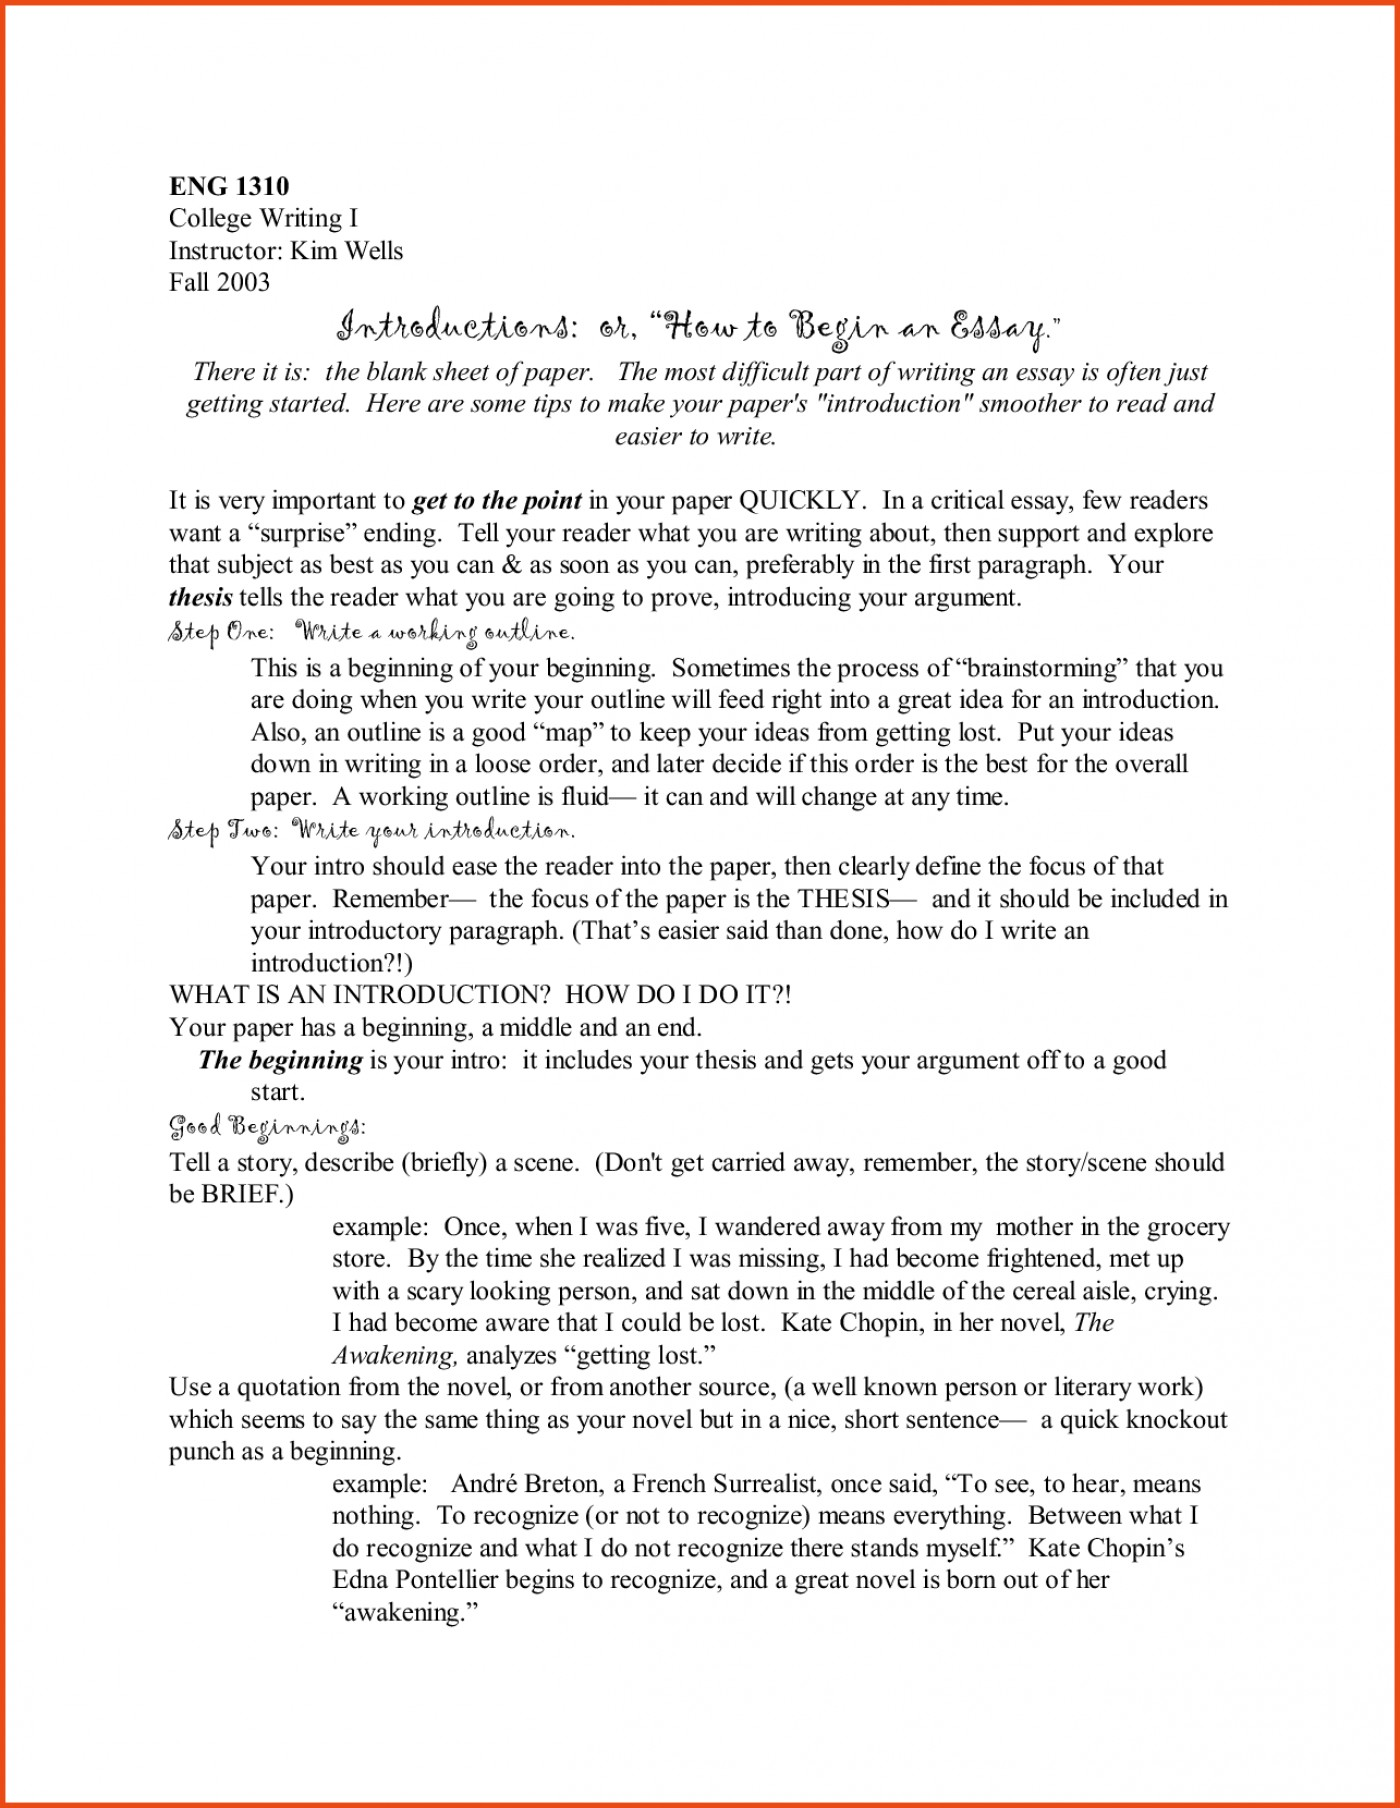 013 College Essays Applications Of Essay Consultant L How To Start An Amazing With A Hook Quote Analysis On Book 1400